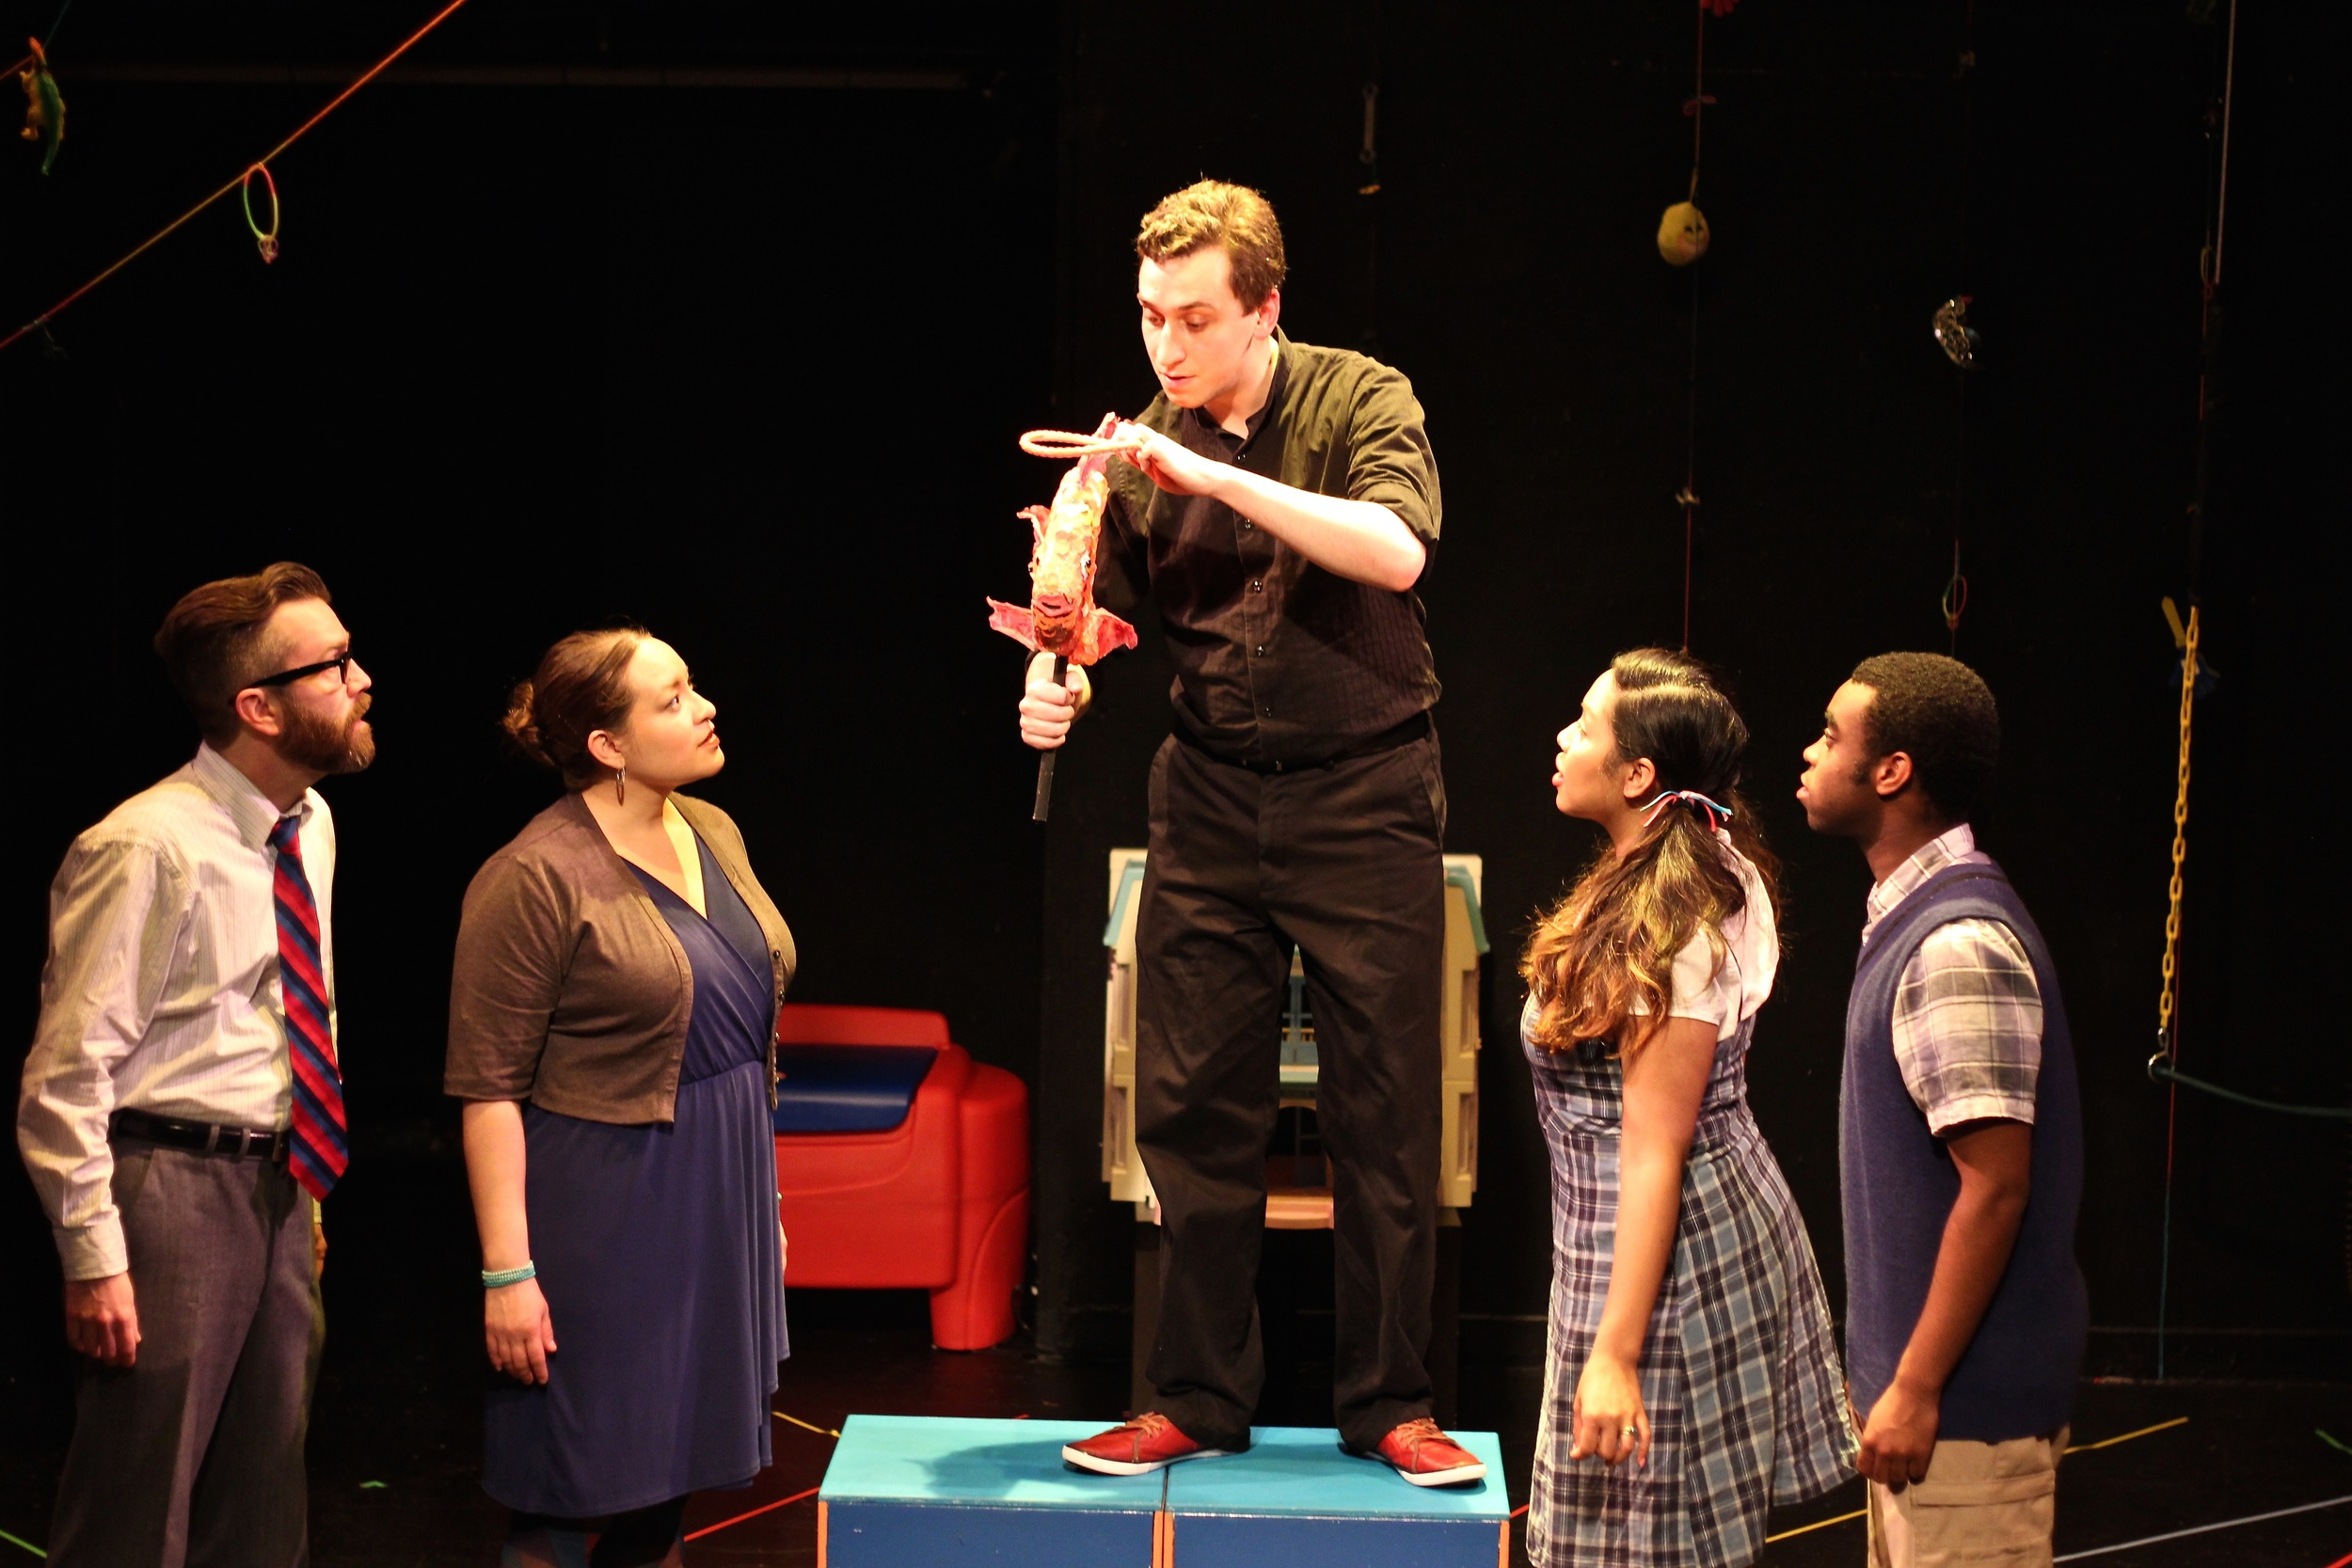 Scot Colford as Daddy, Karina Beleno Carney as Mommy, Noah Simes as And A Half, Ally Dawson as Daughtery, and Marc Pierre as Sonny